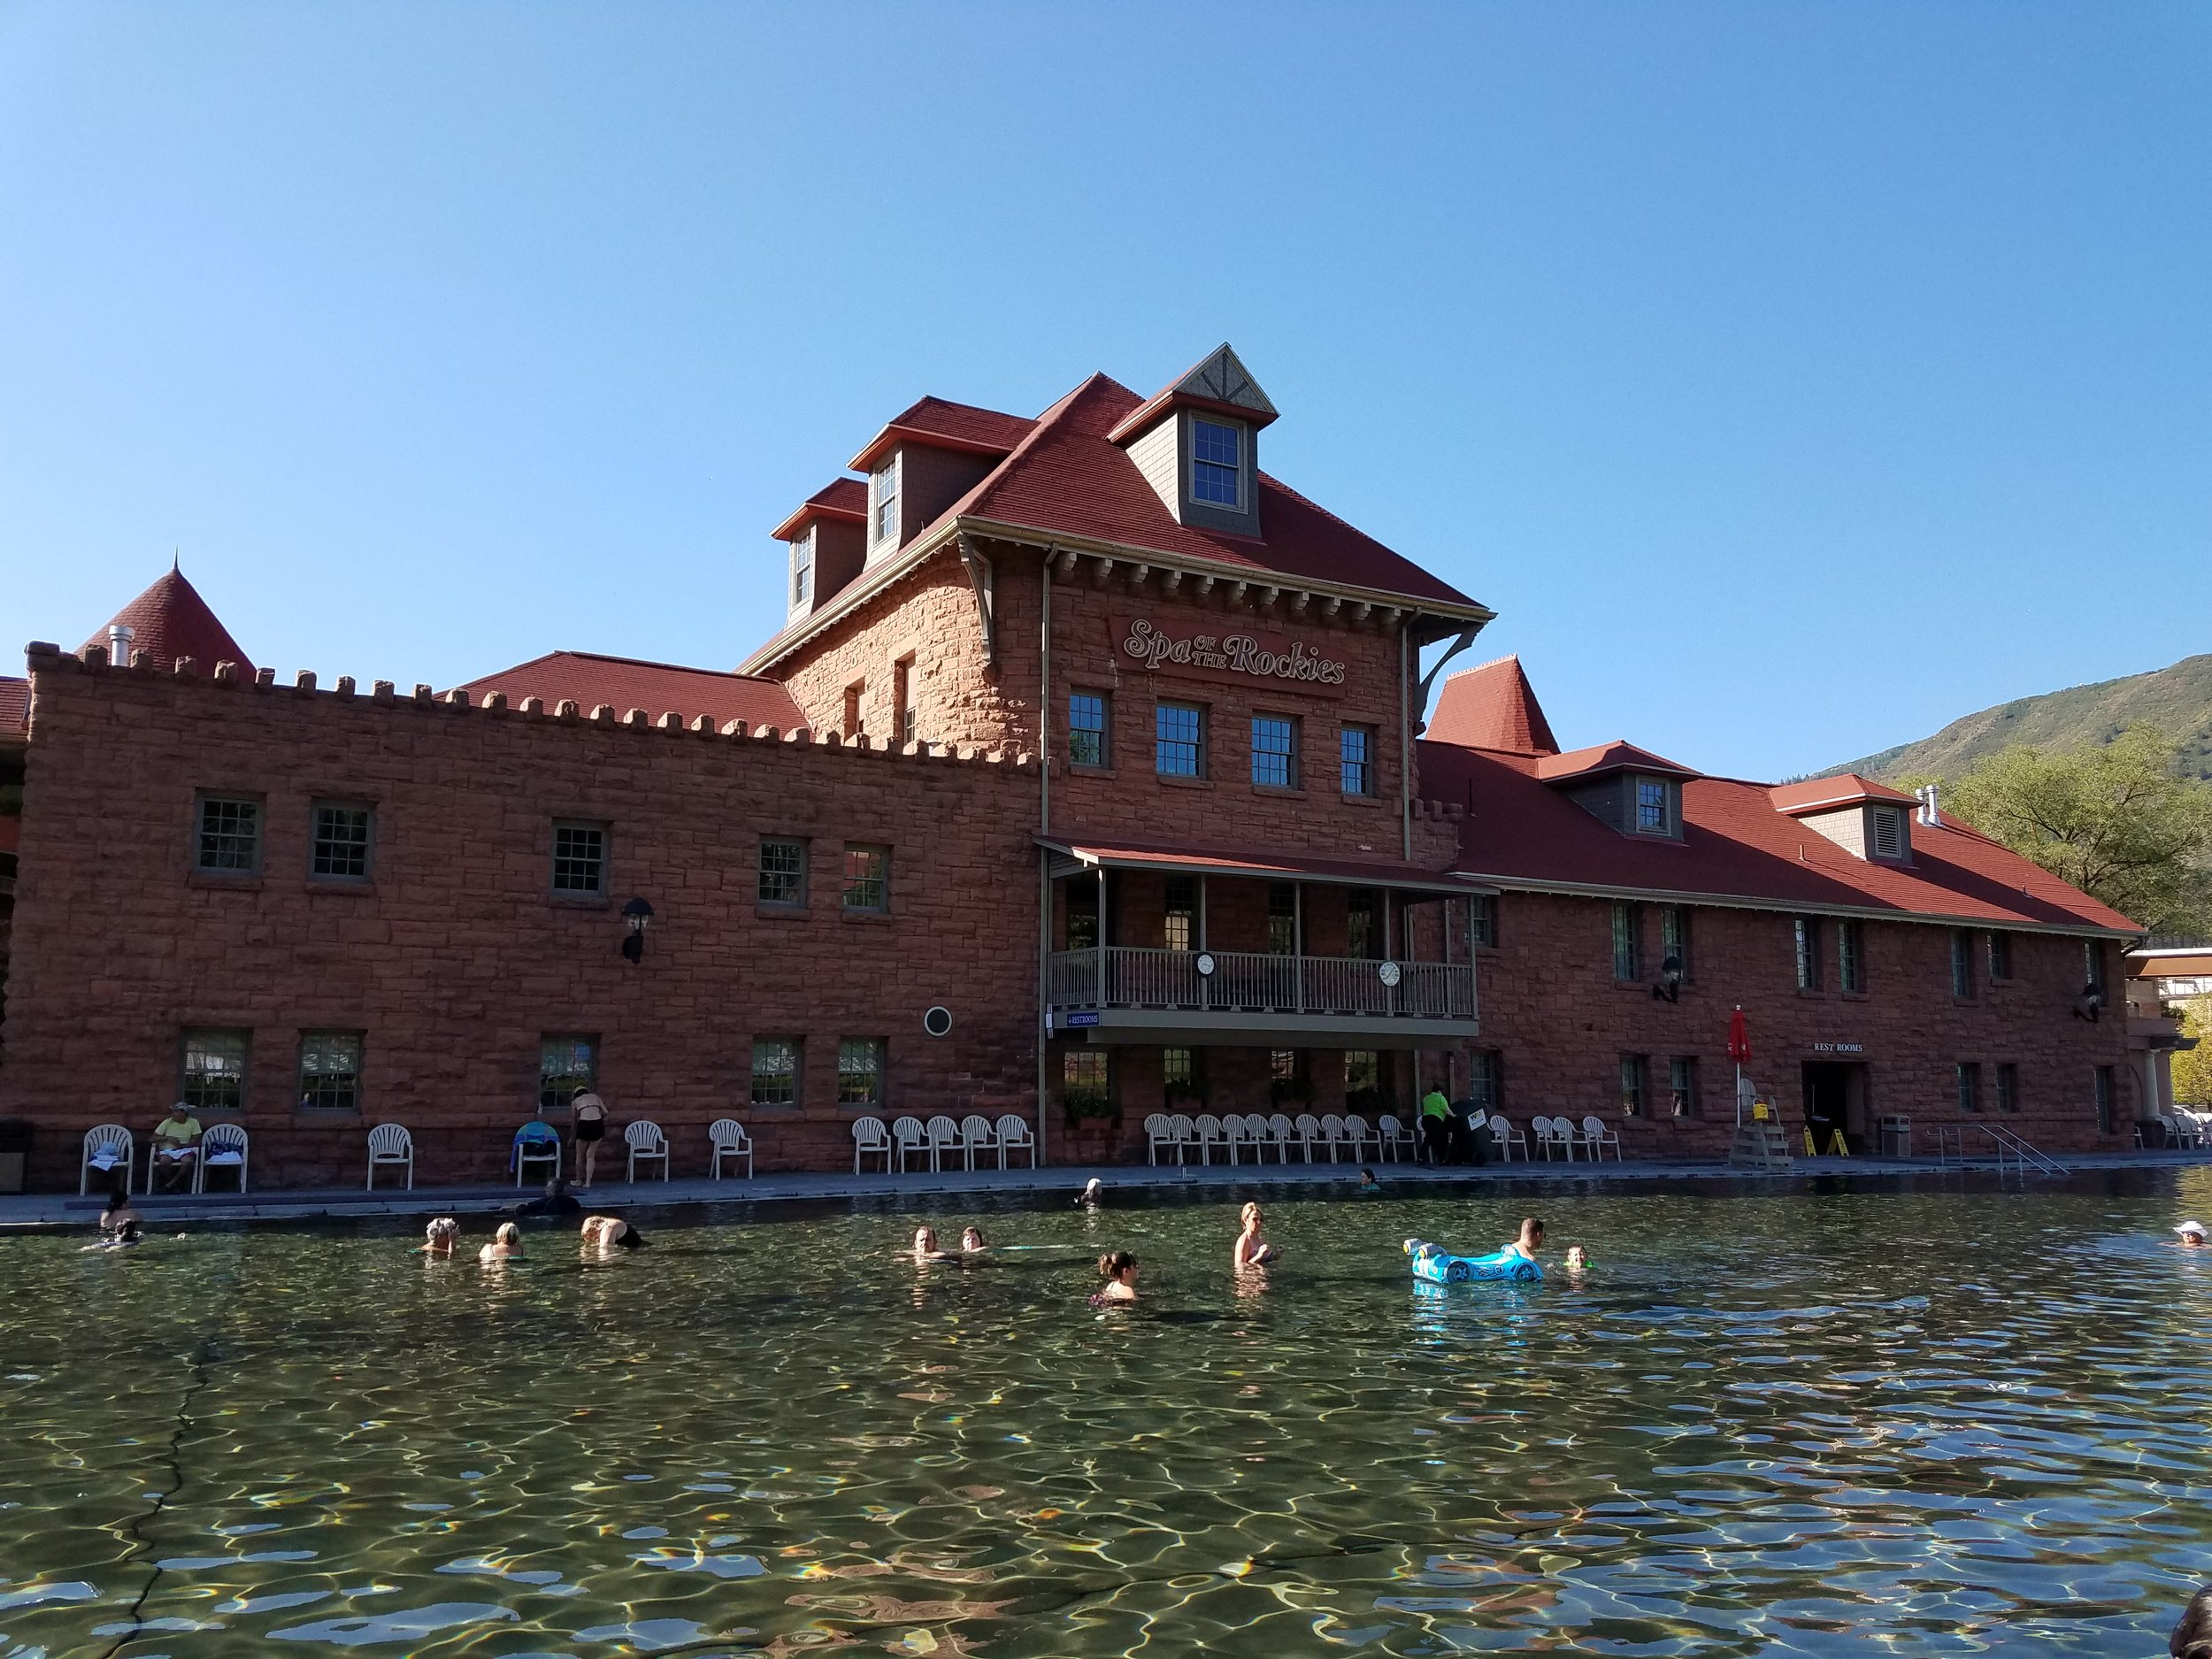 Glenwood Hot Springs Pool  - the world's largest hot spring pool with 15 minerals to re-energize and renew tired muscles.